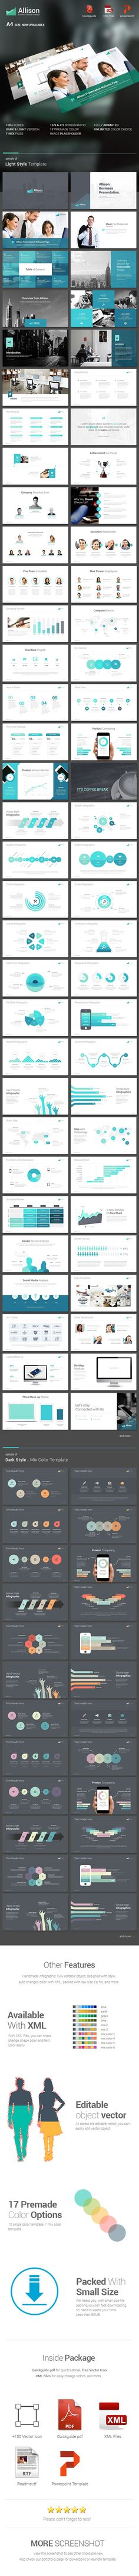 47 best presentation inspiration images graph design page layout